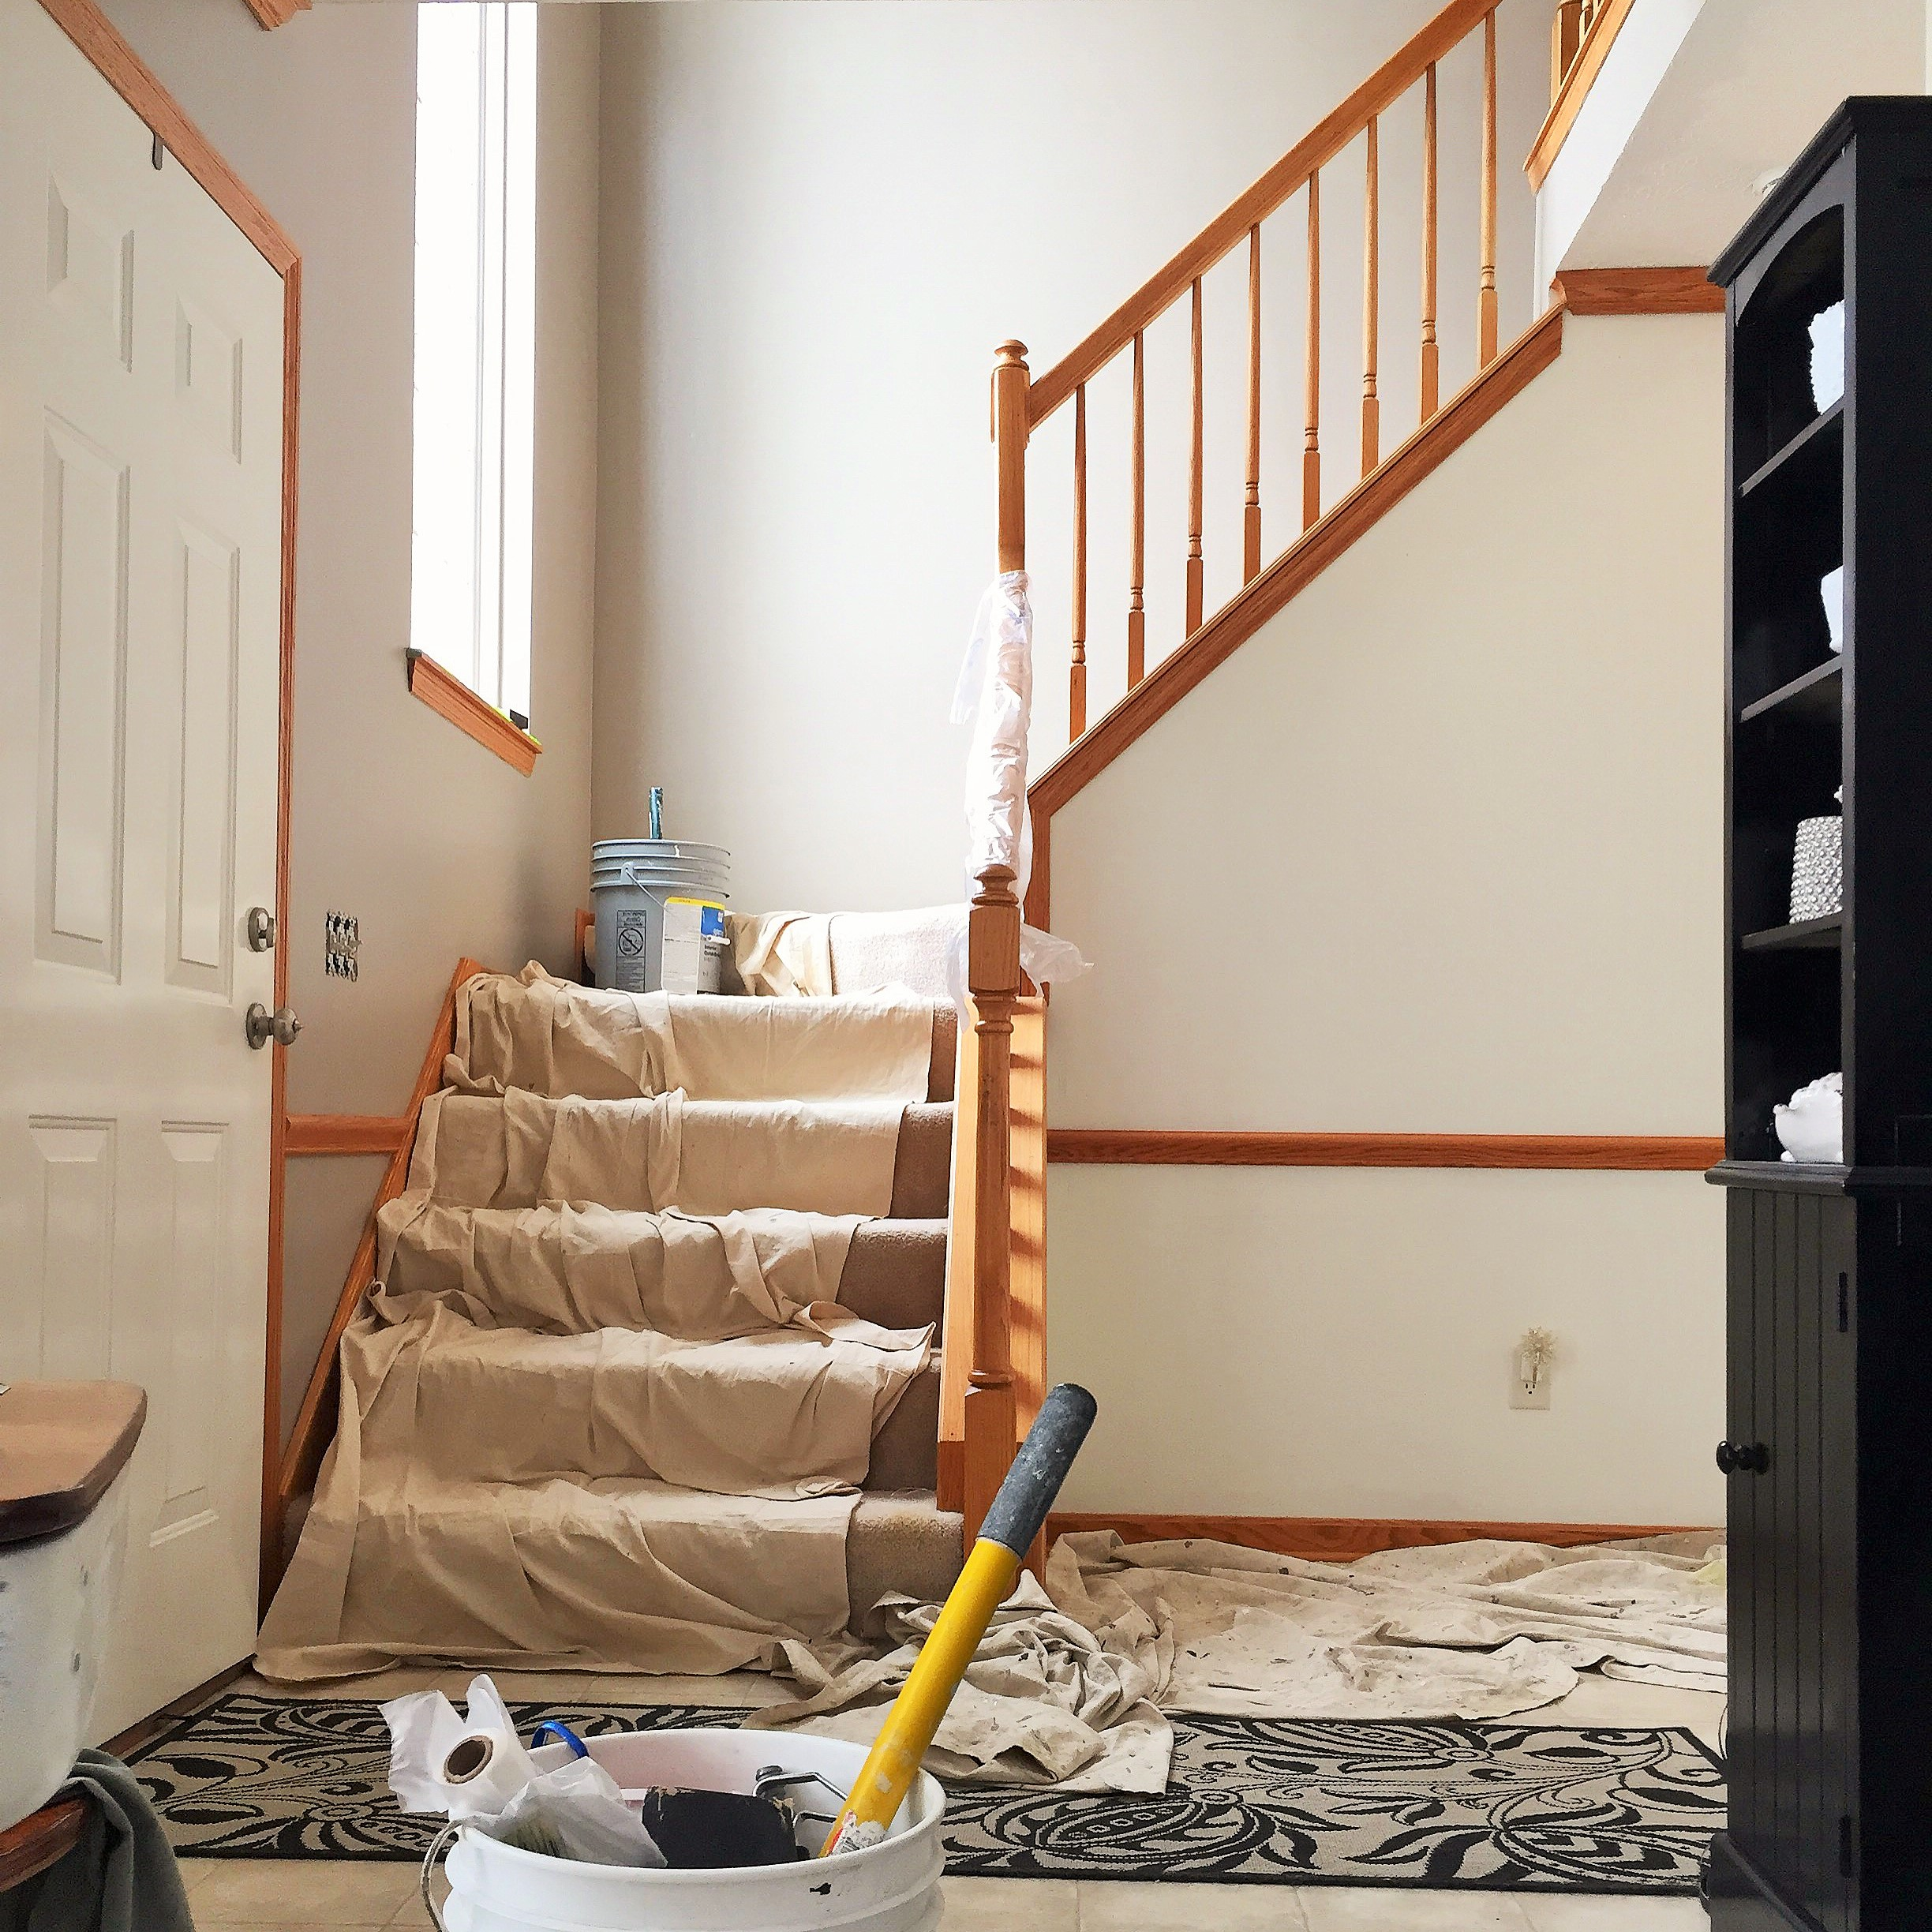 Staircase Remodel: DIY Staircase Remodel